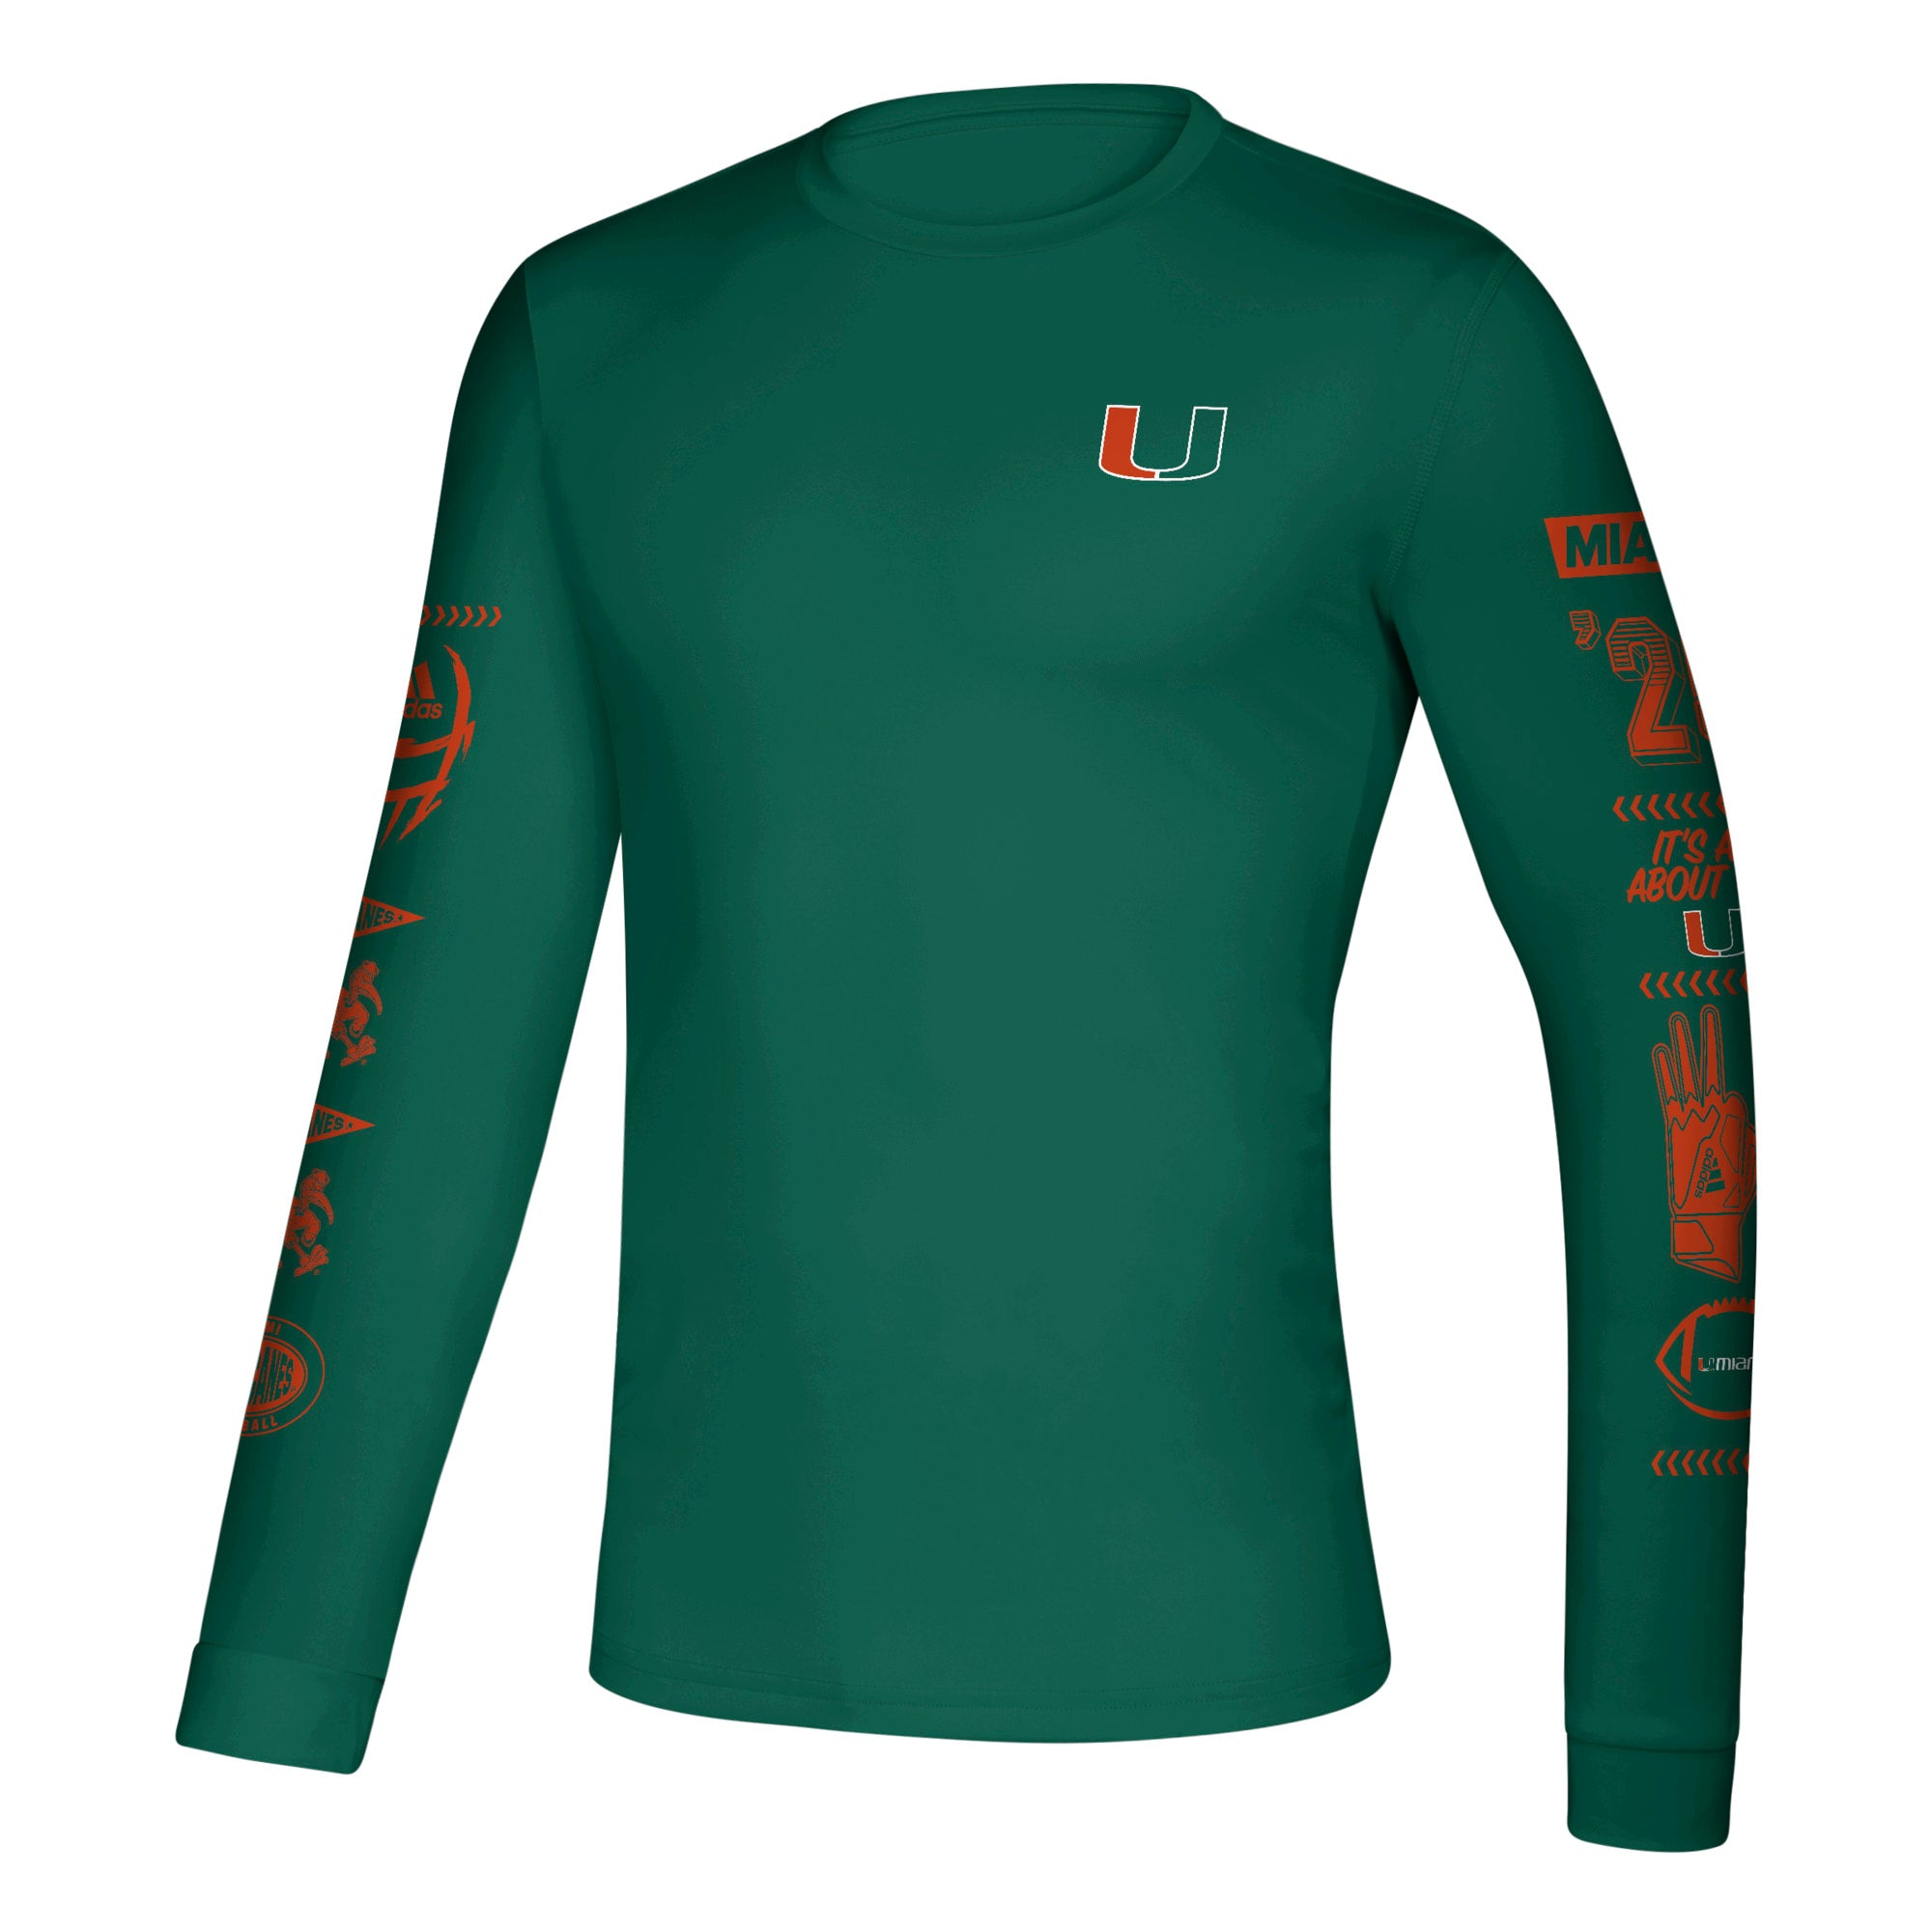 674947be Miami Hurricanes 2019 Speed Sleeves Creator Long Sleeve T-Shirt - Green